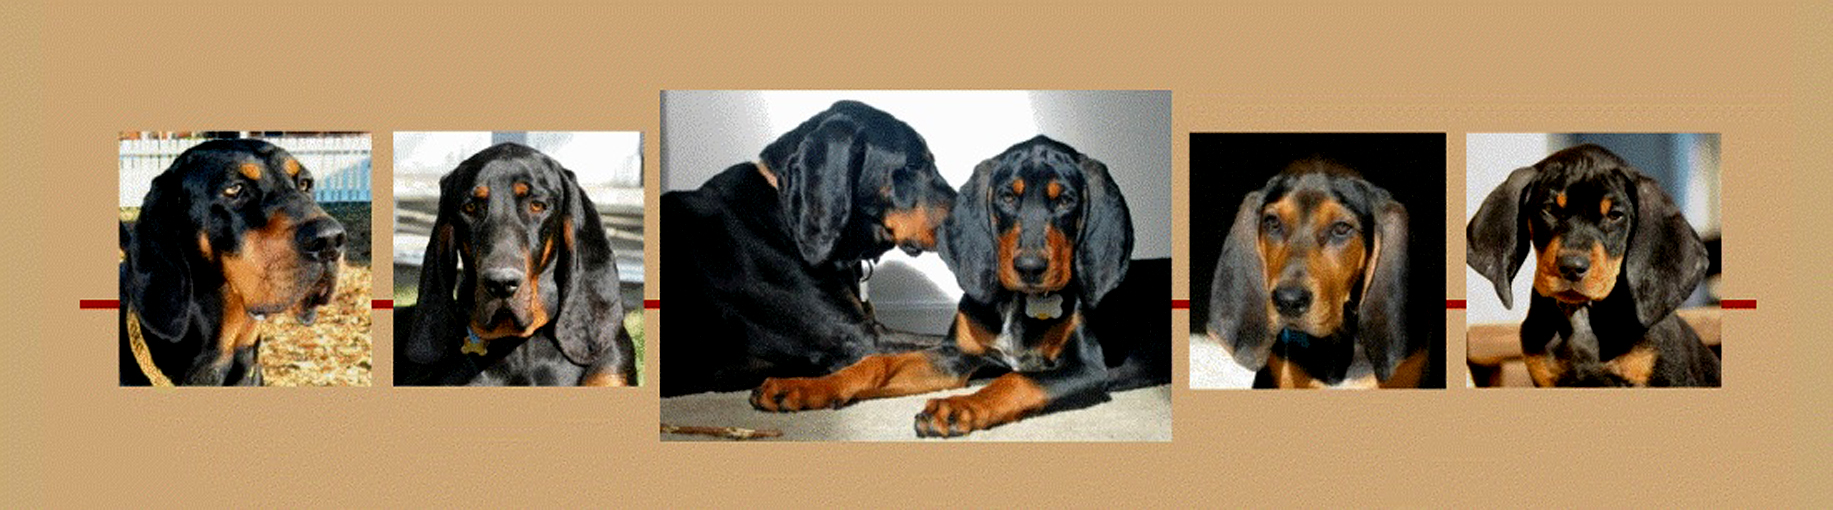 American Black and Tan Coonhound Rescue, Inc.